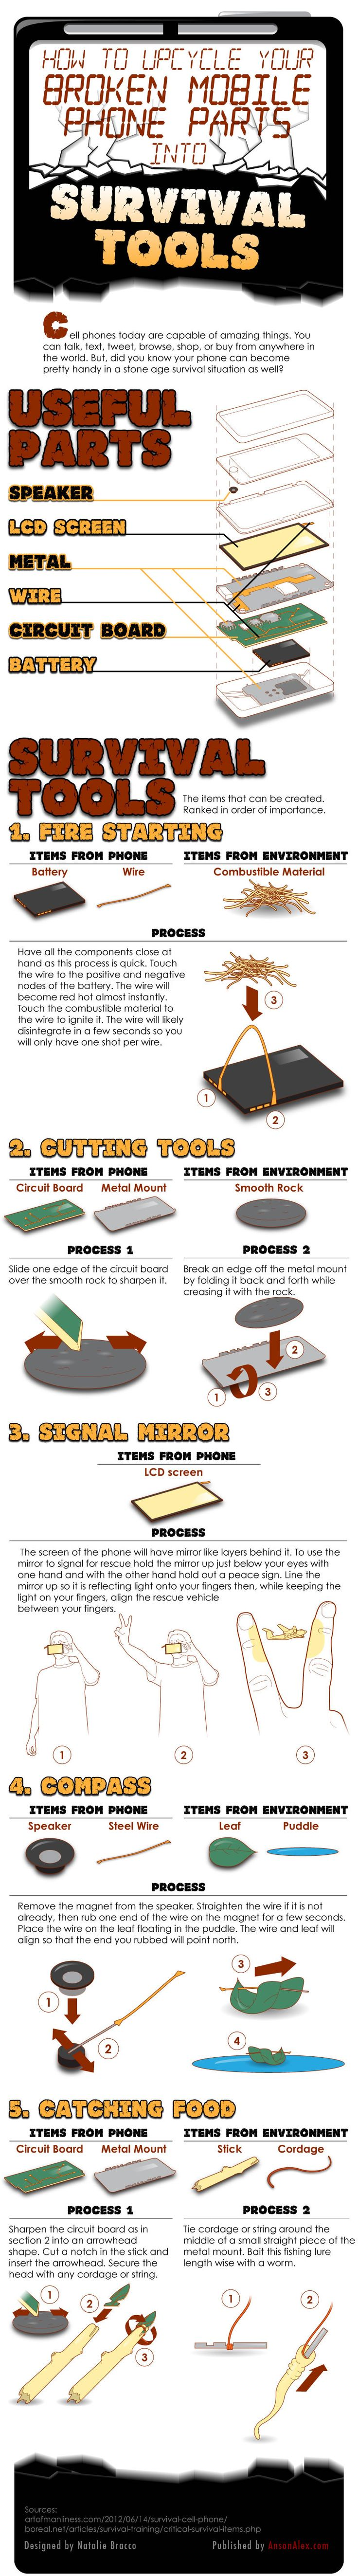 How to Upcycle your Broken Mobile Phone Parts into Survival Tools | Smartphone Survival #survivallife www.survivallife.com